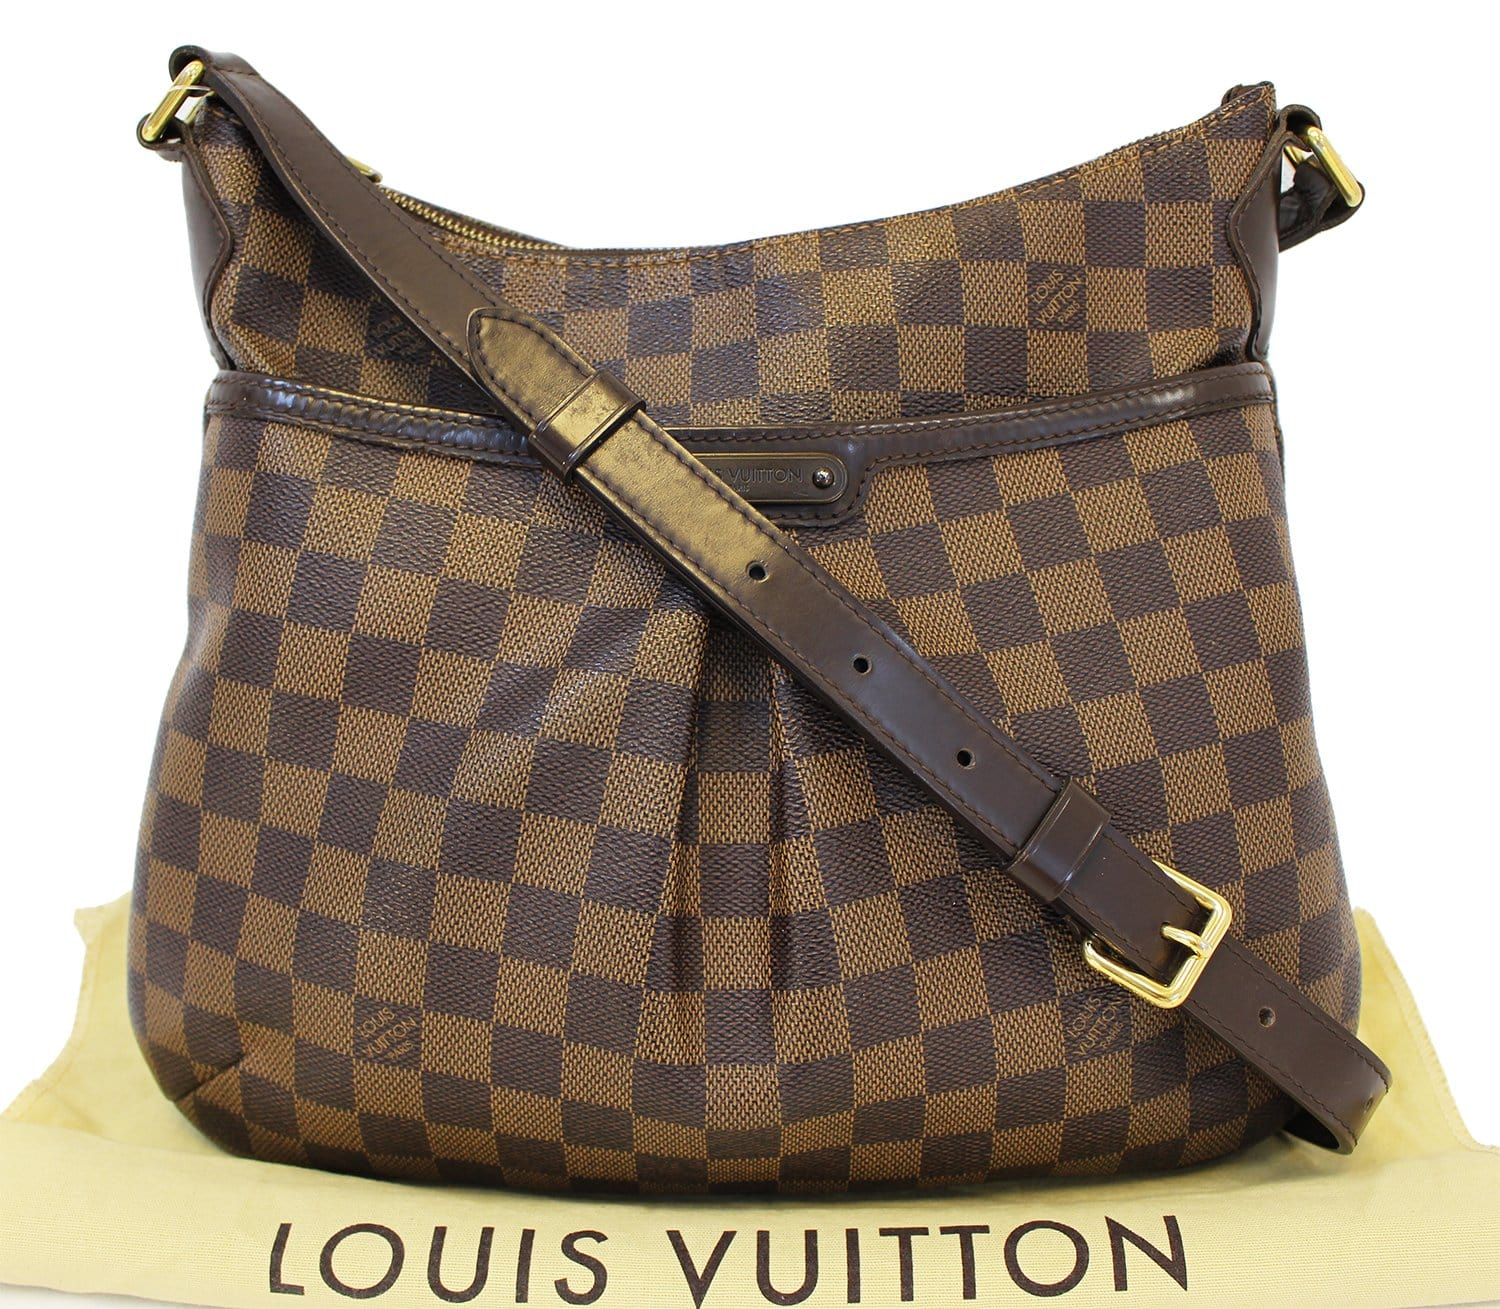 80e8763454 Authentic LOUIS VUITTON Bloomsbury PM Damier Ebene Shoulder Bag E3392